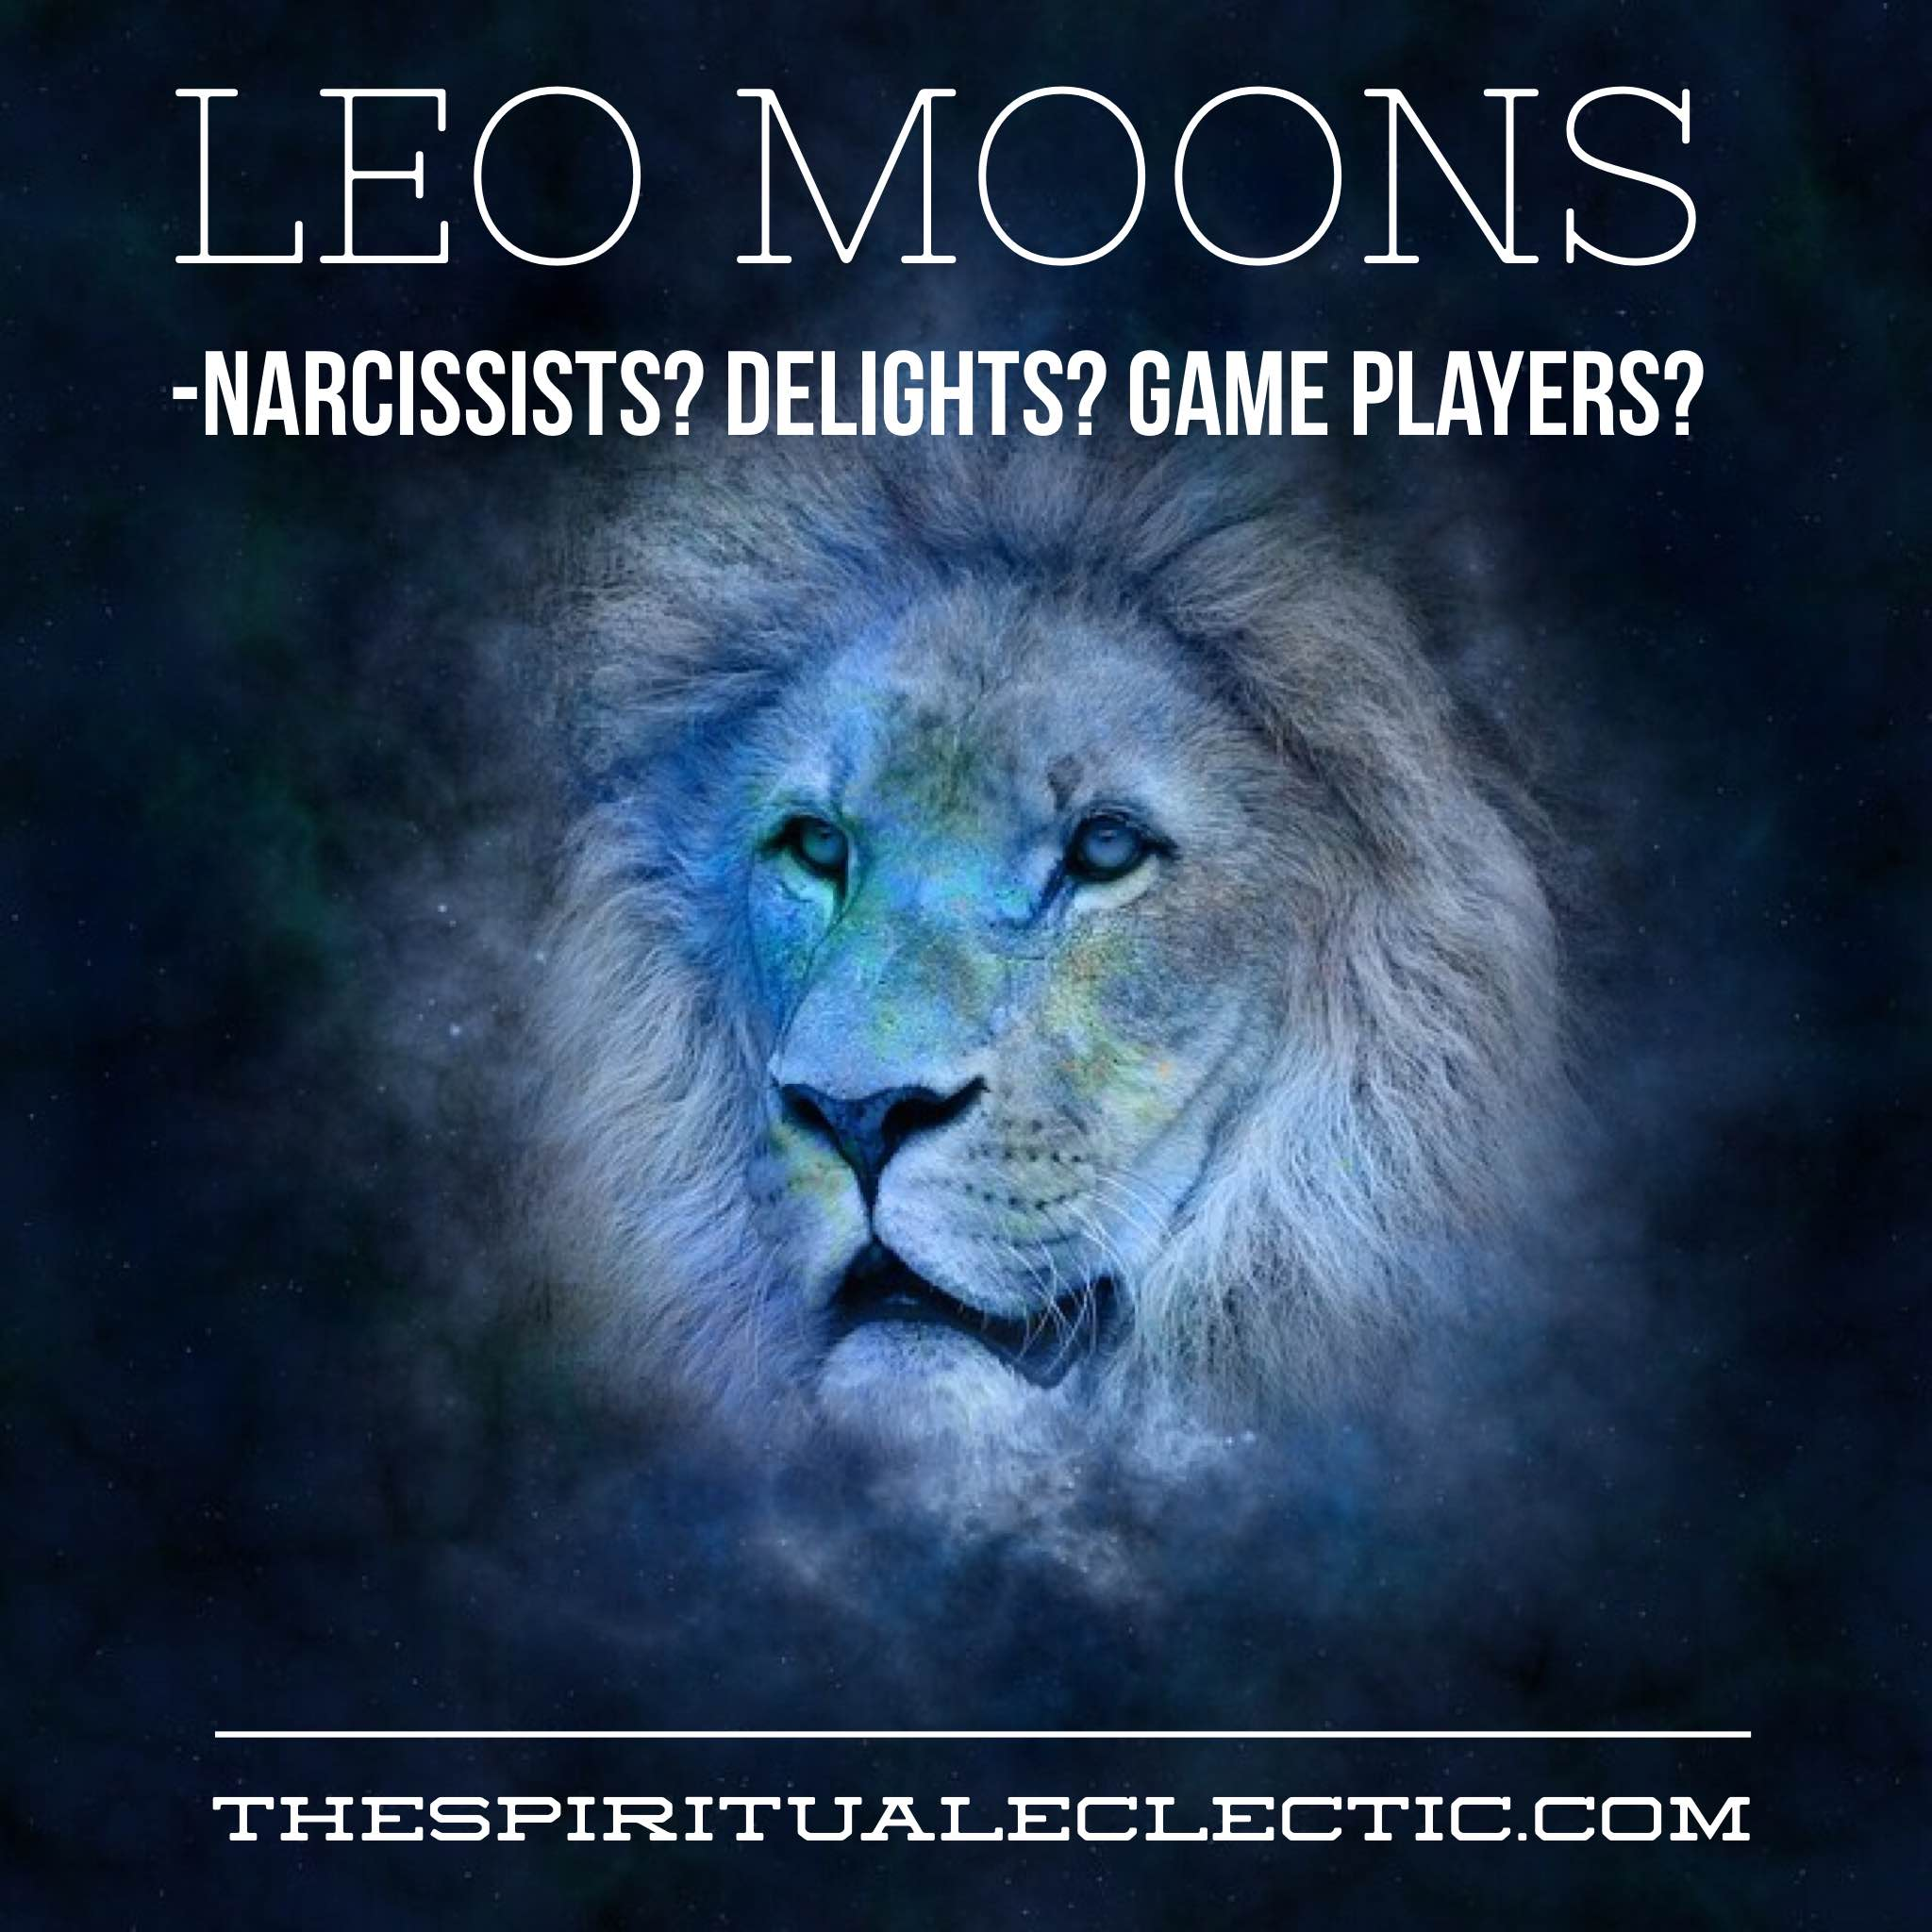 Applied Astrology: Leo Moons and Narcissistic Behaviors - The